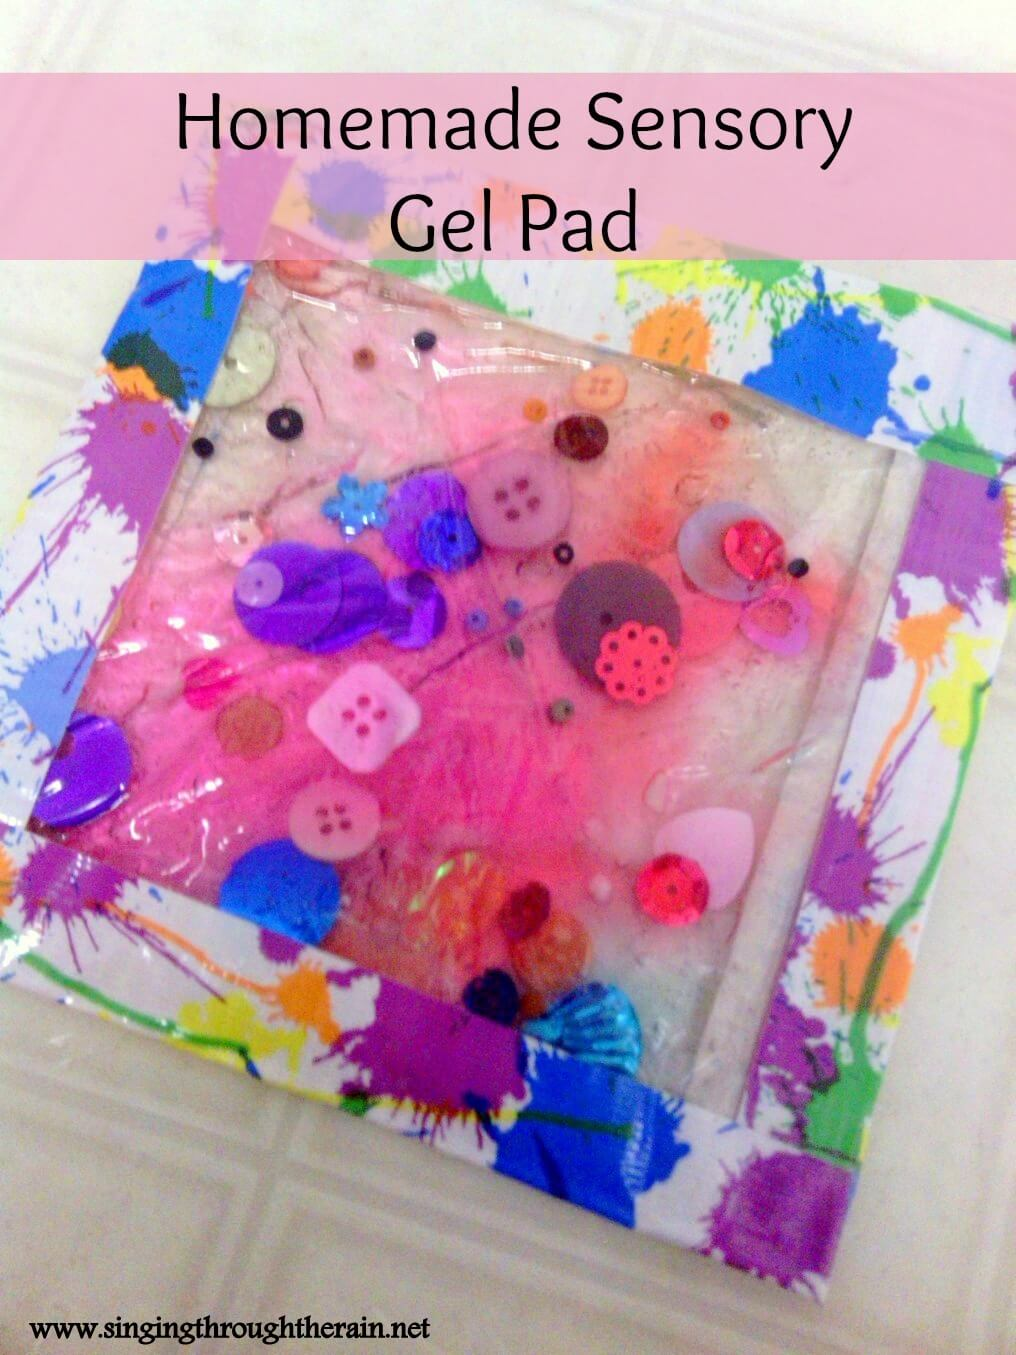 Sensory Toys Autism : Homemade sensory gel pad singing through the rain